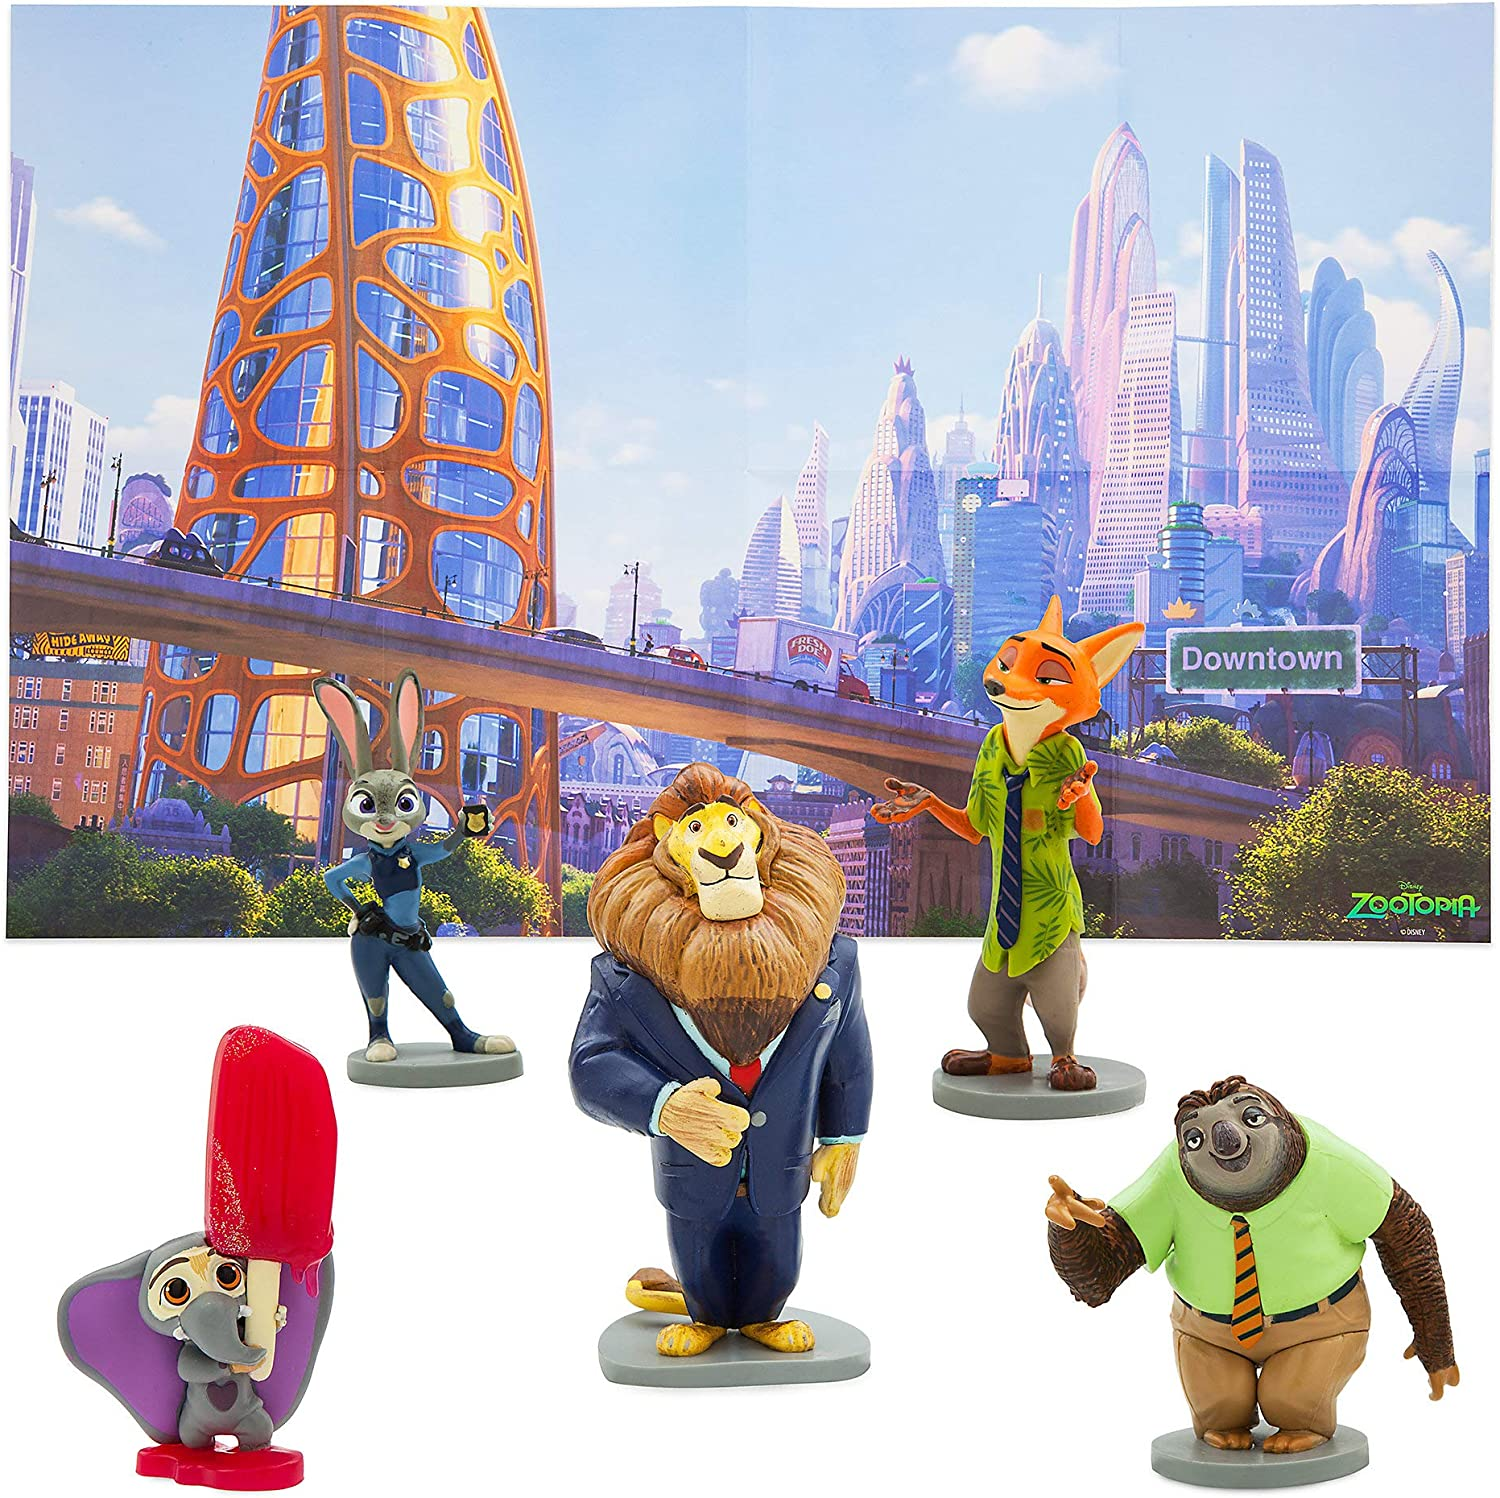 Disney Zootopia Figure Set Play Max 46% OFF Al sold out.